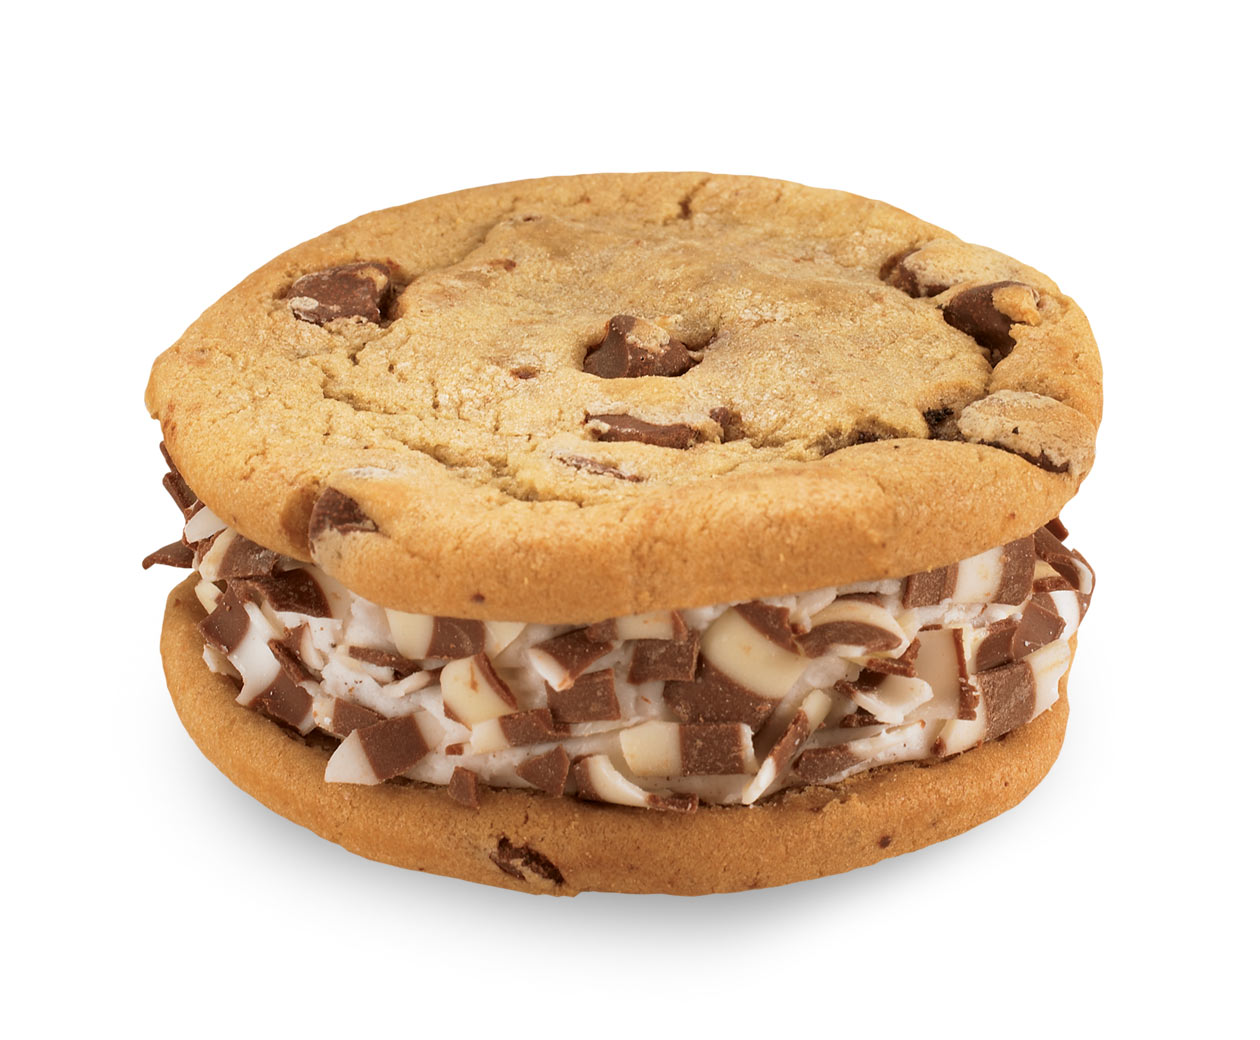 Ice Cream Cookie Sandwich Images & Pictures - Becuo